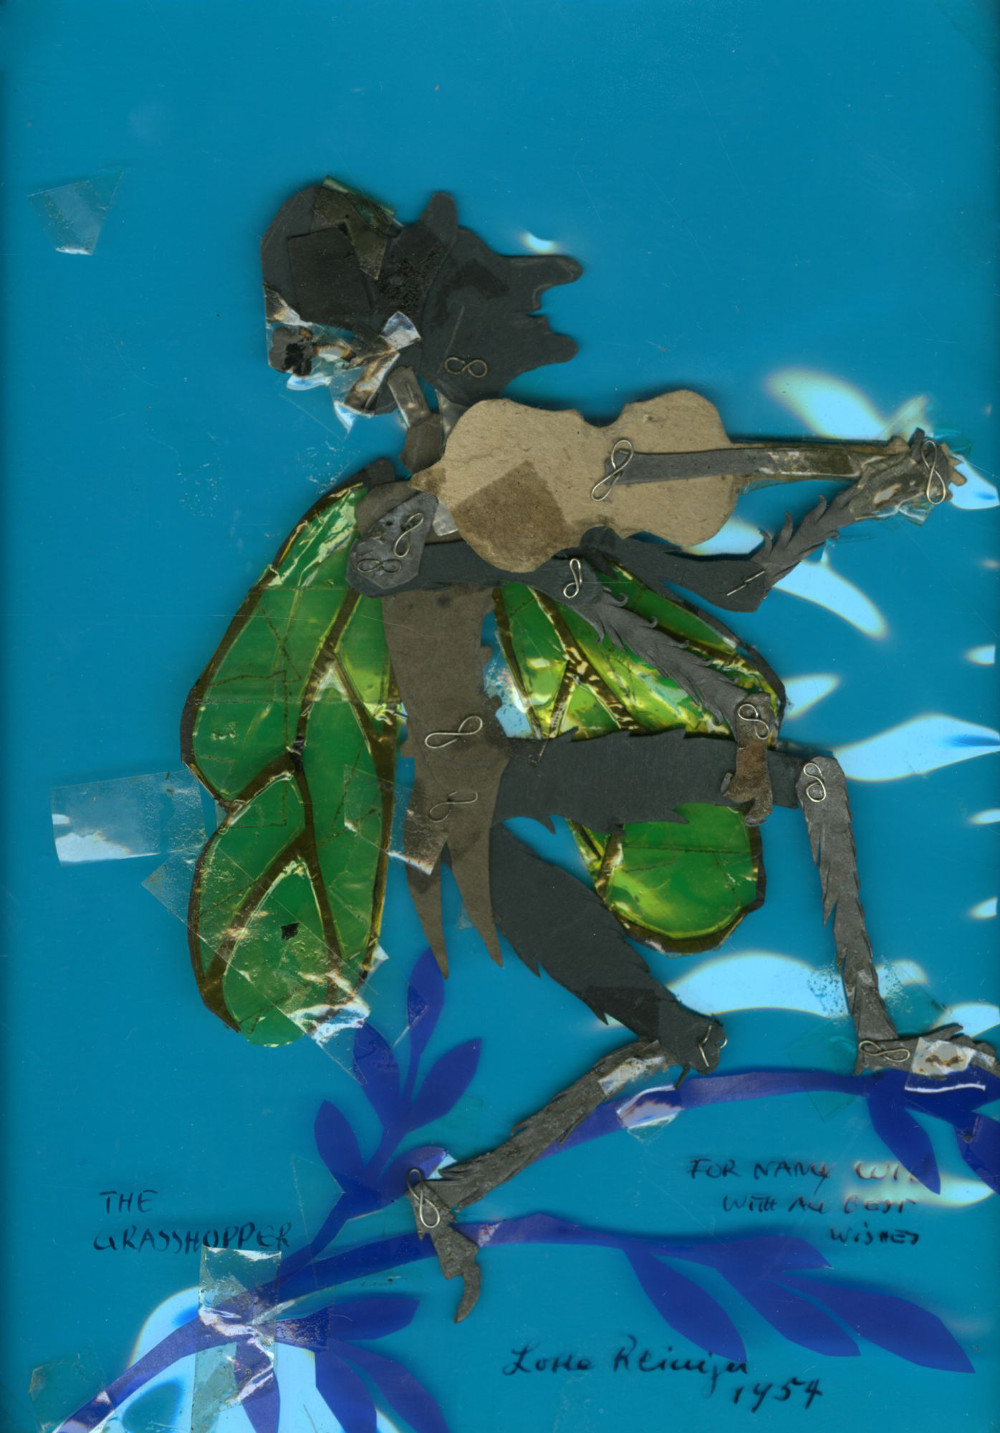 Lotte Reiniger, The Grasshopper and the Ant, 1954 Dimension de l'original: 23 cm × 16 cm Medium: papiers découpés et articulés, collage - Coll. Cinémathèque québécoise - 1993.0258.AR.01